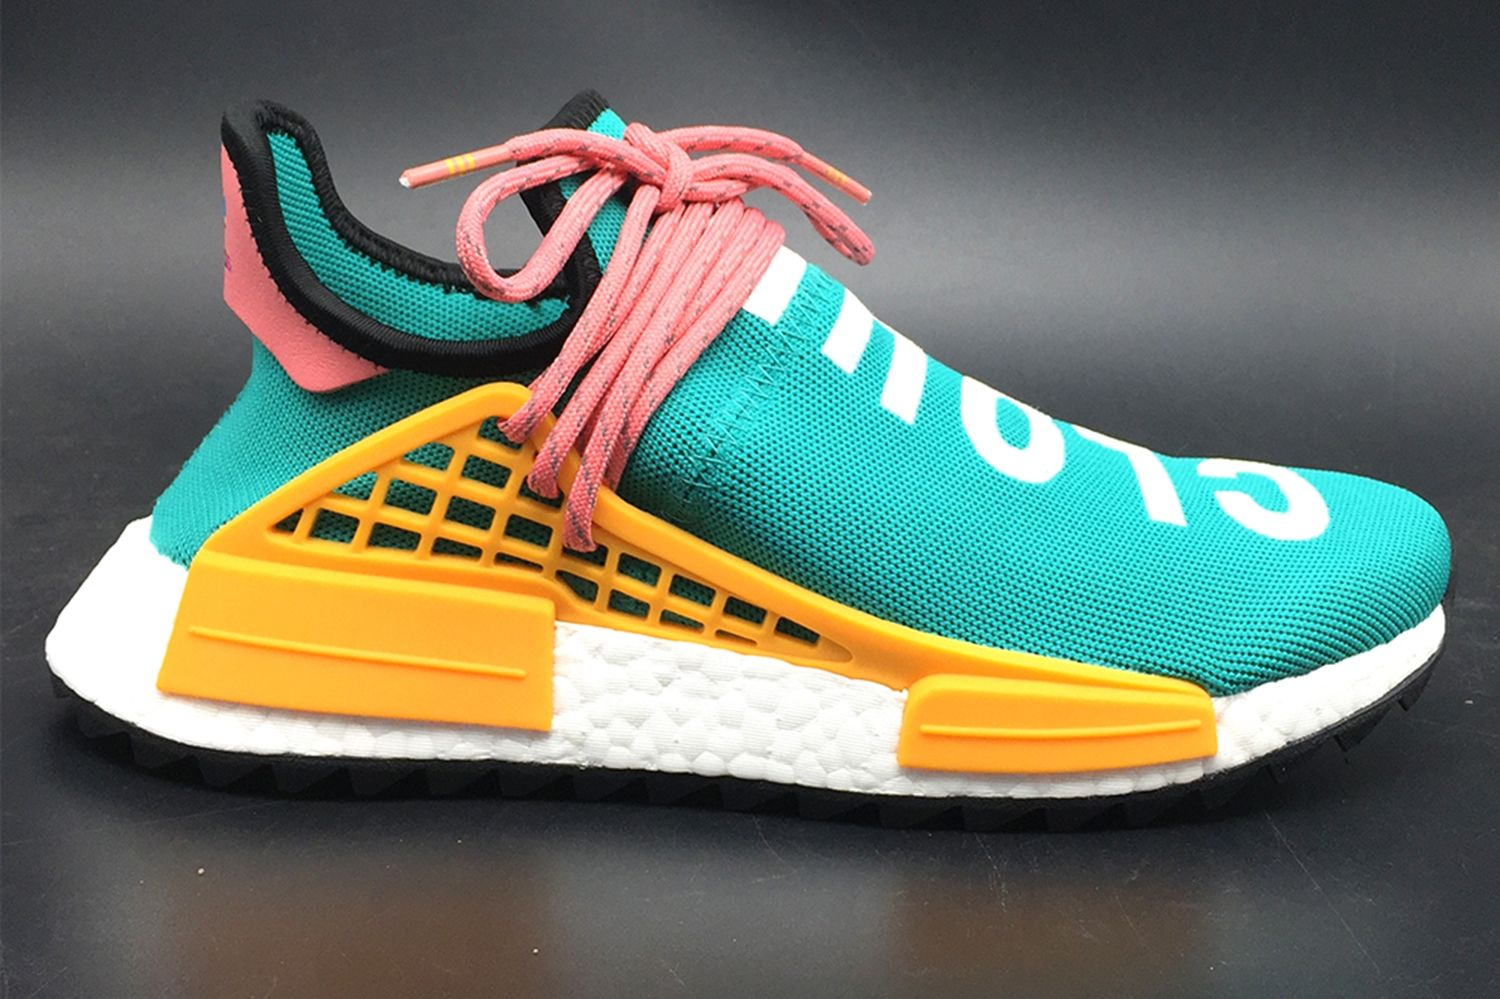 1. Pharrell Williams and Adidas Originals teamed up to build